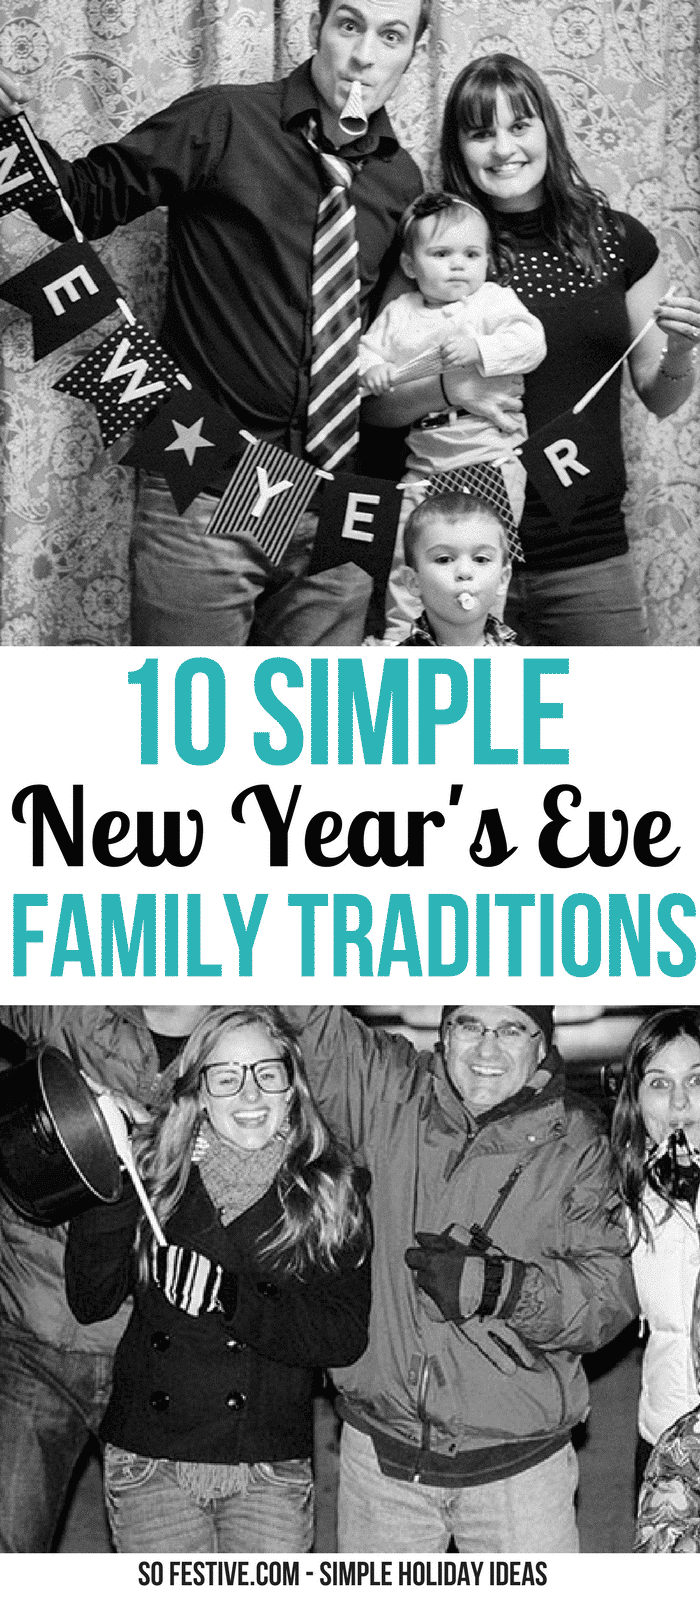 10 Simple New Year's Eve Family Traditions